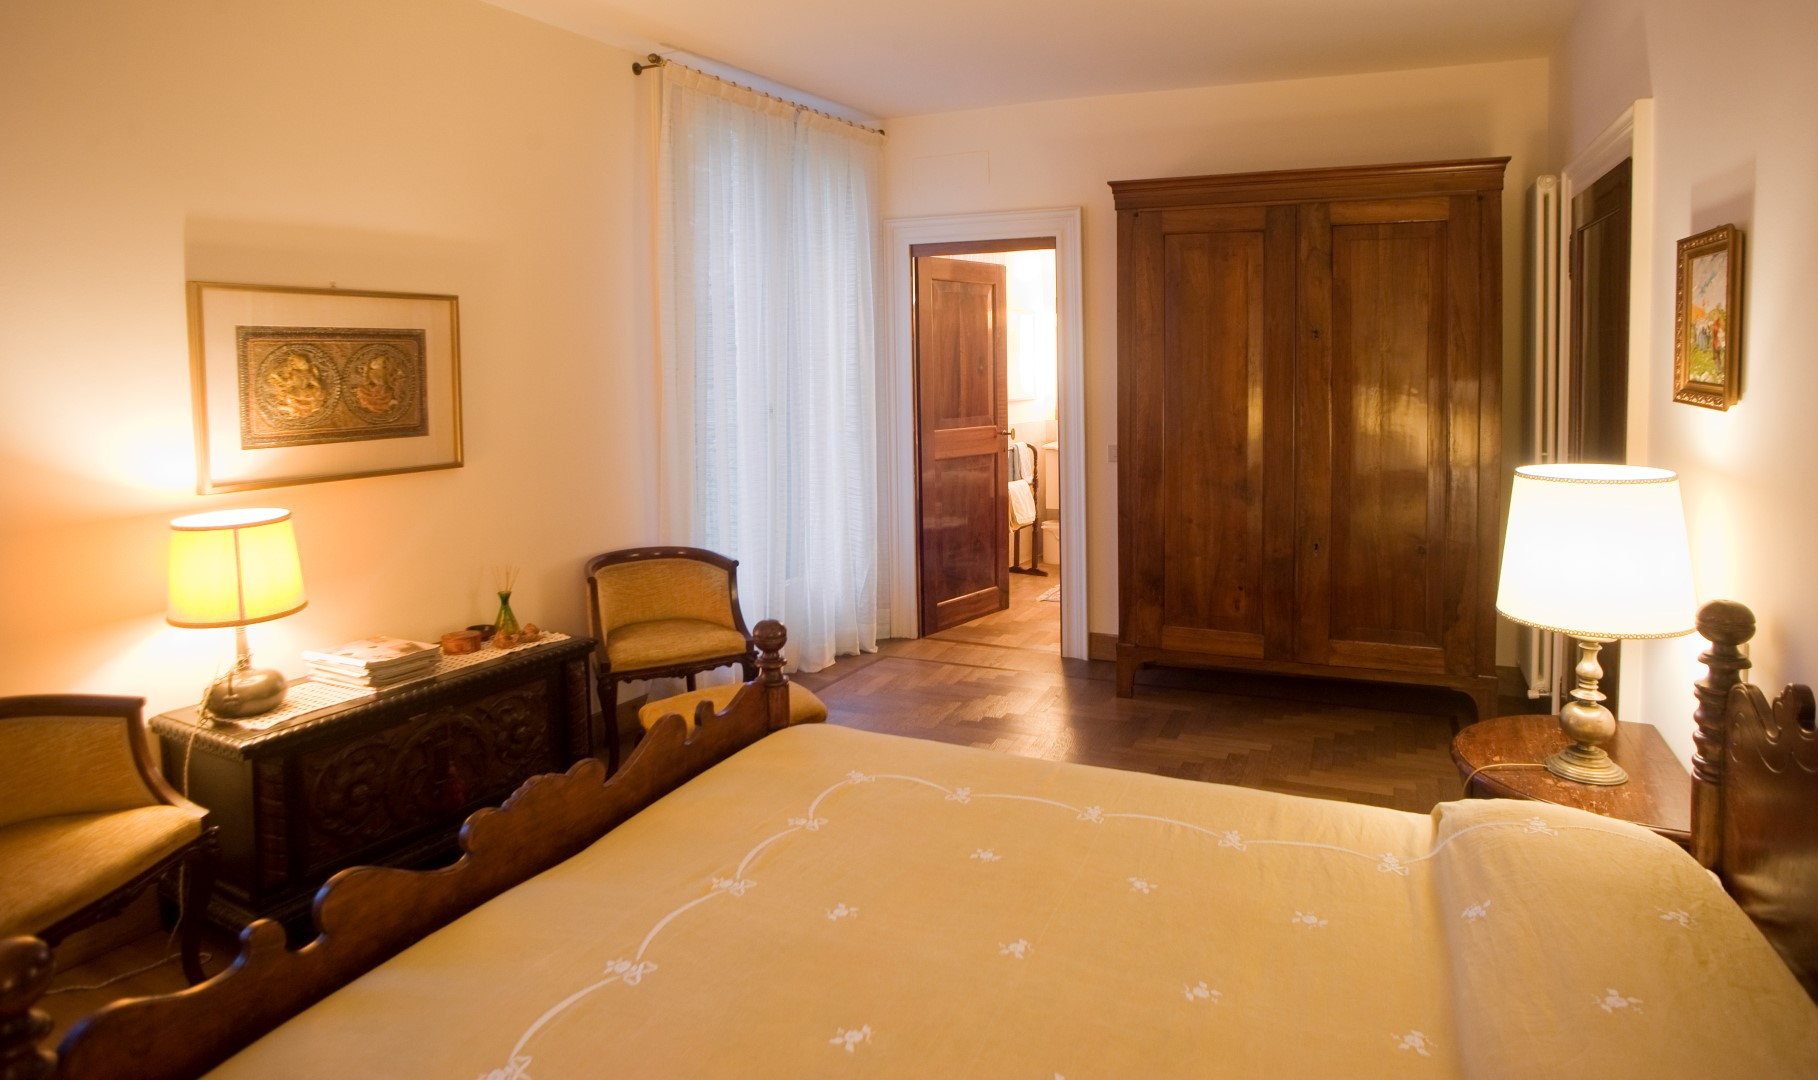 B&b al ponte Vicenza camera matrimoniale 02